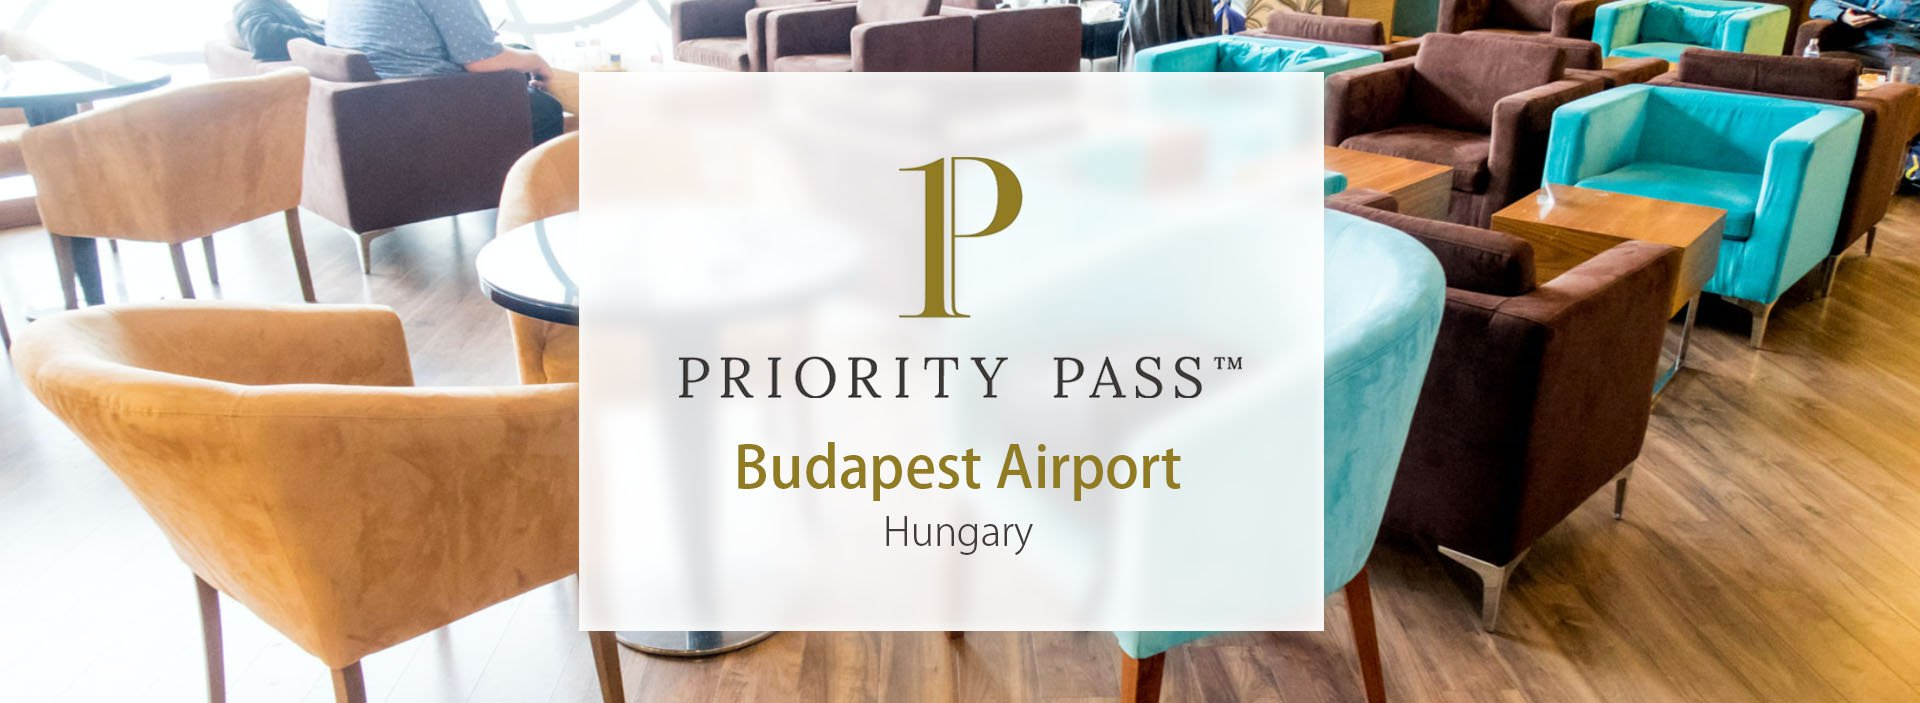 What Is the Best Priority Pass Lounge at Budapest Airport?